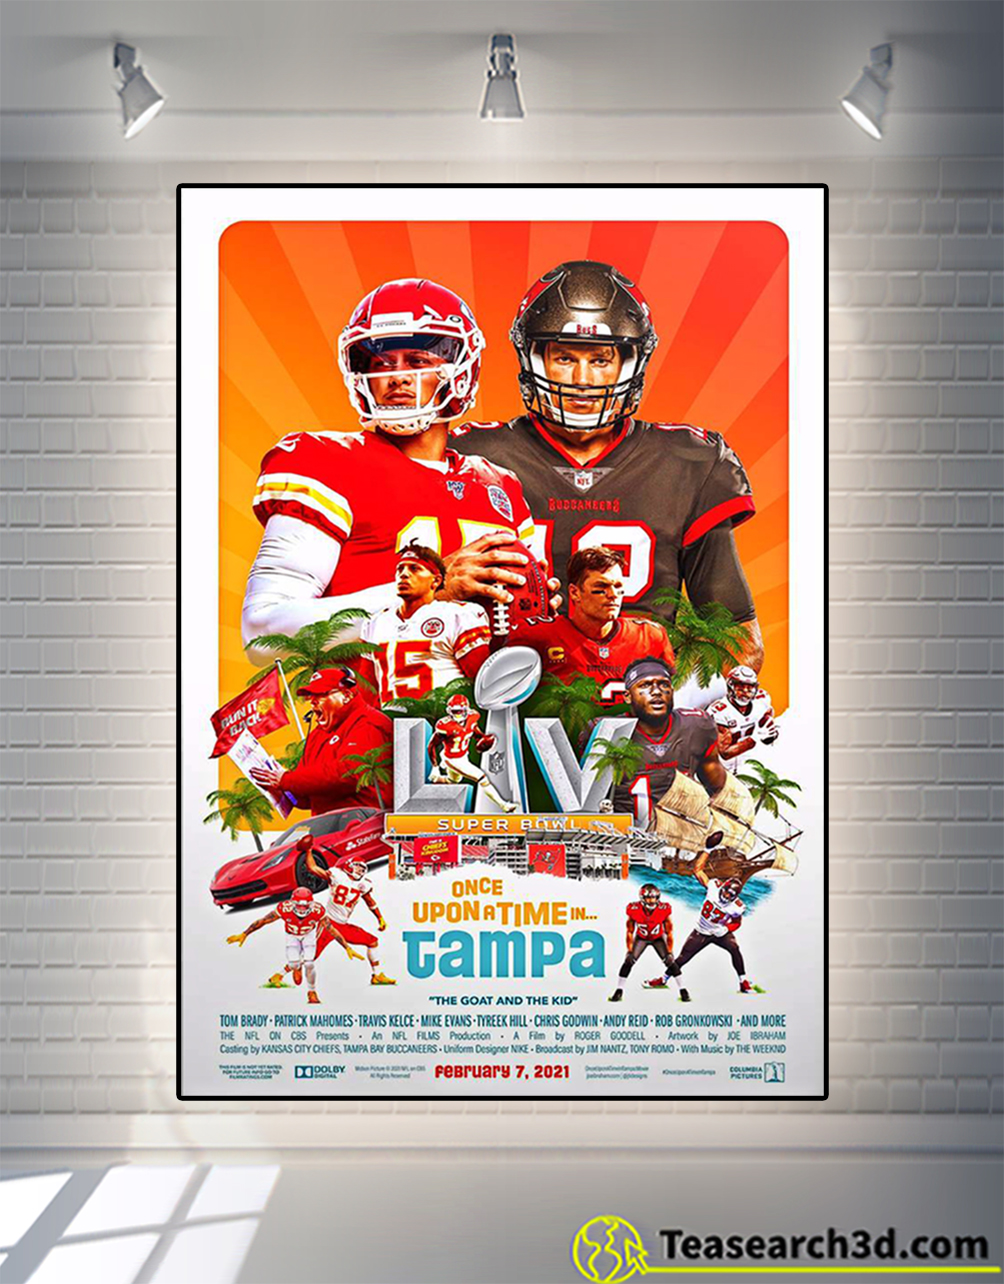 Once upon a time in tampa the goat and the kid poster